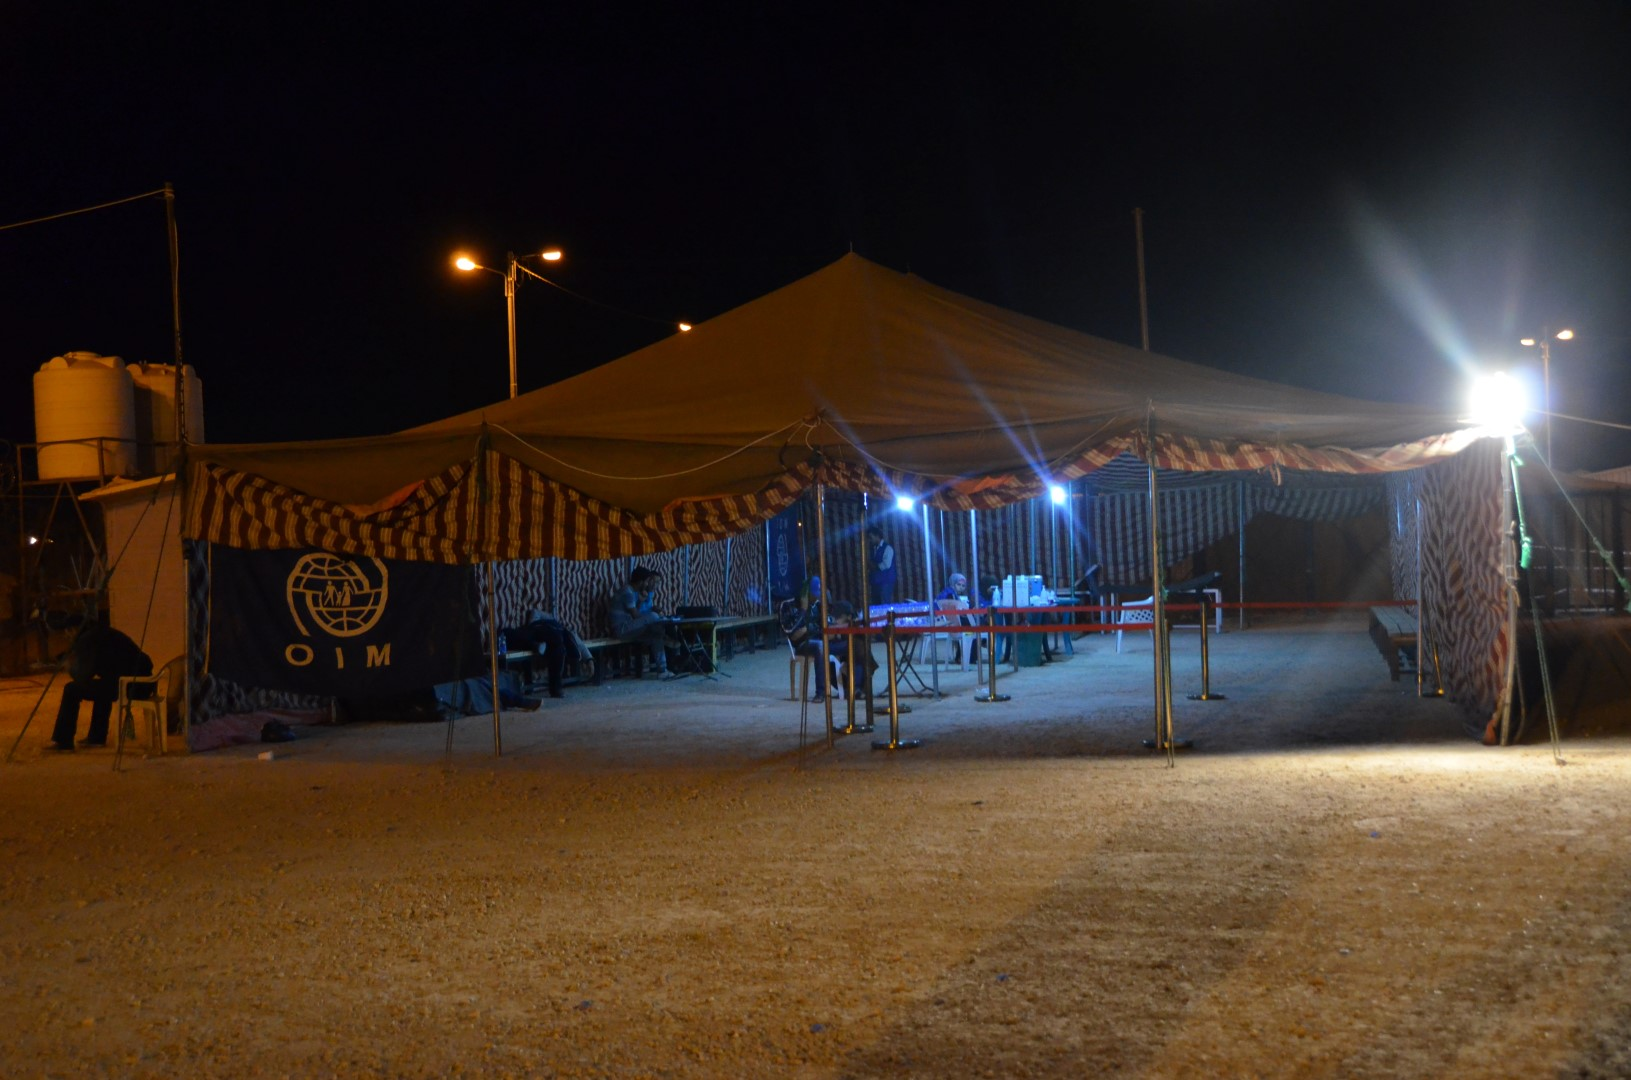 Employees of the International Organization for Migration prepare to receive hundreds of Syrian refugees in the middle of the night at the Za'atari camp in northern Jordan